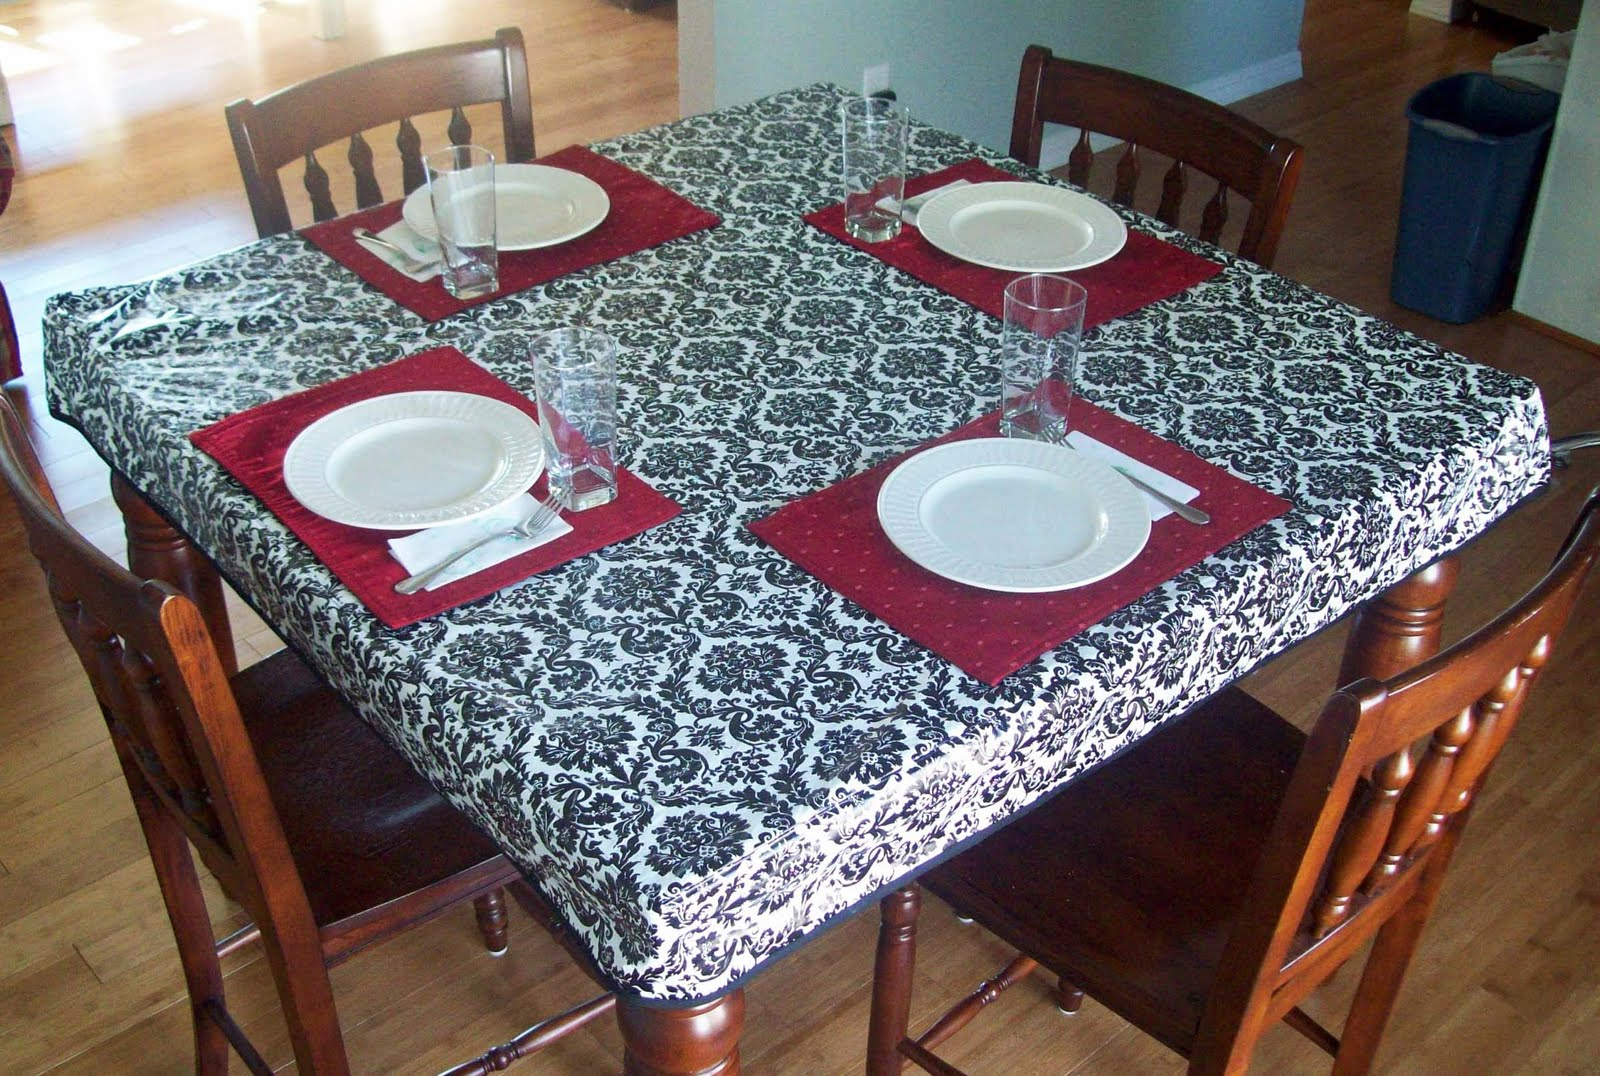 Macy's | Table Linens & Table Cloths, Tablecloths, Table Runners